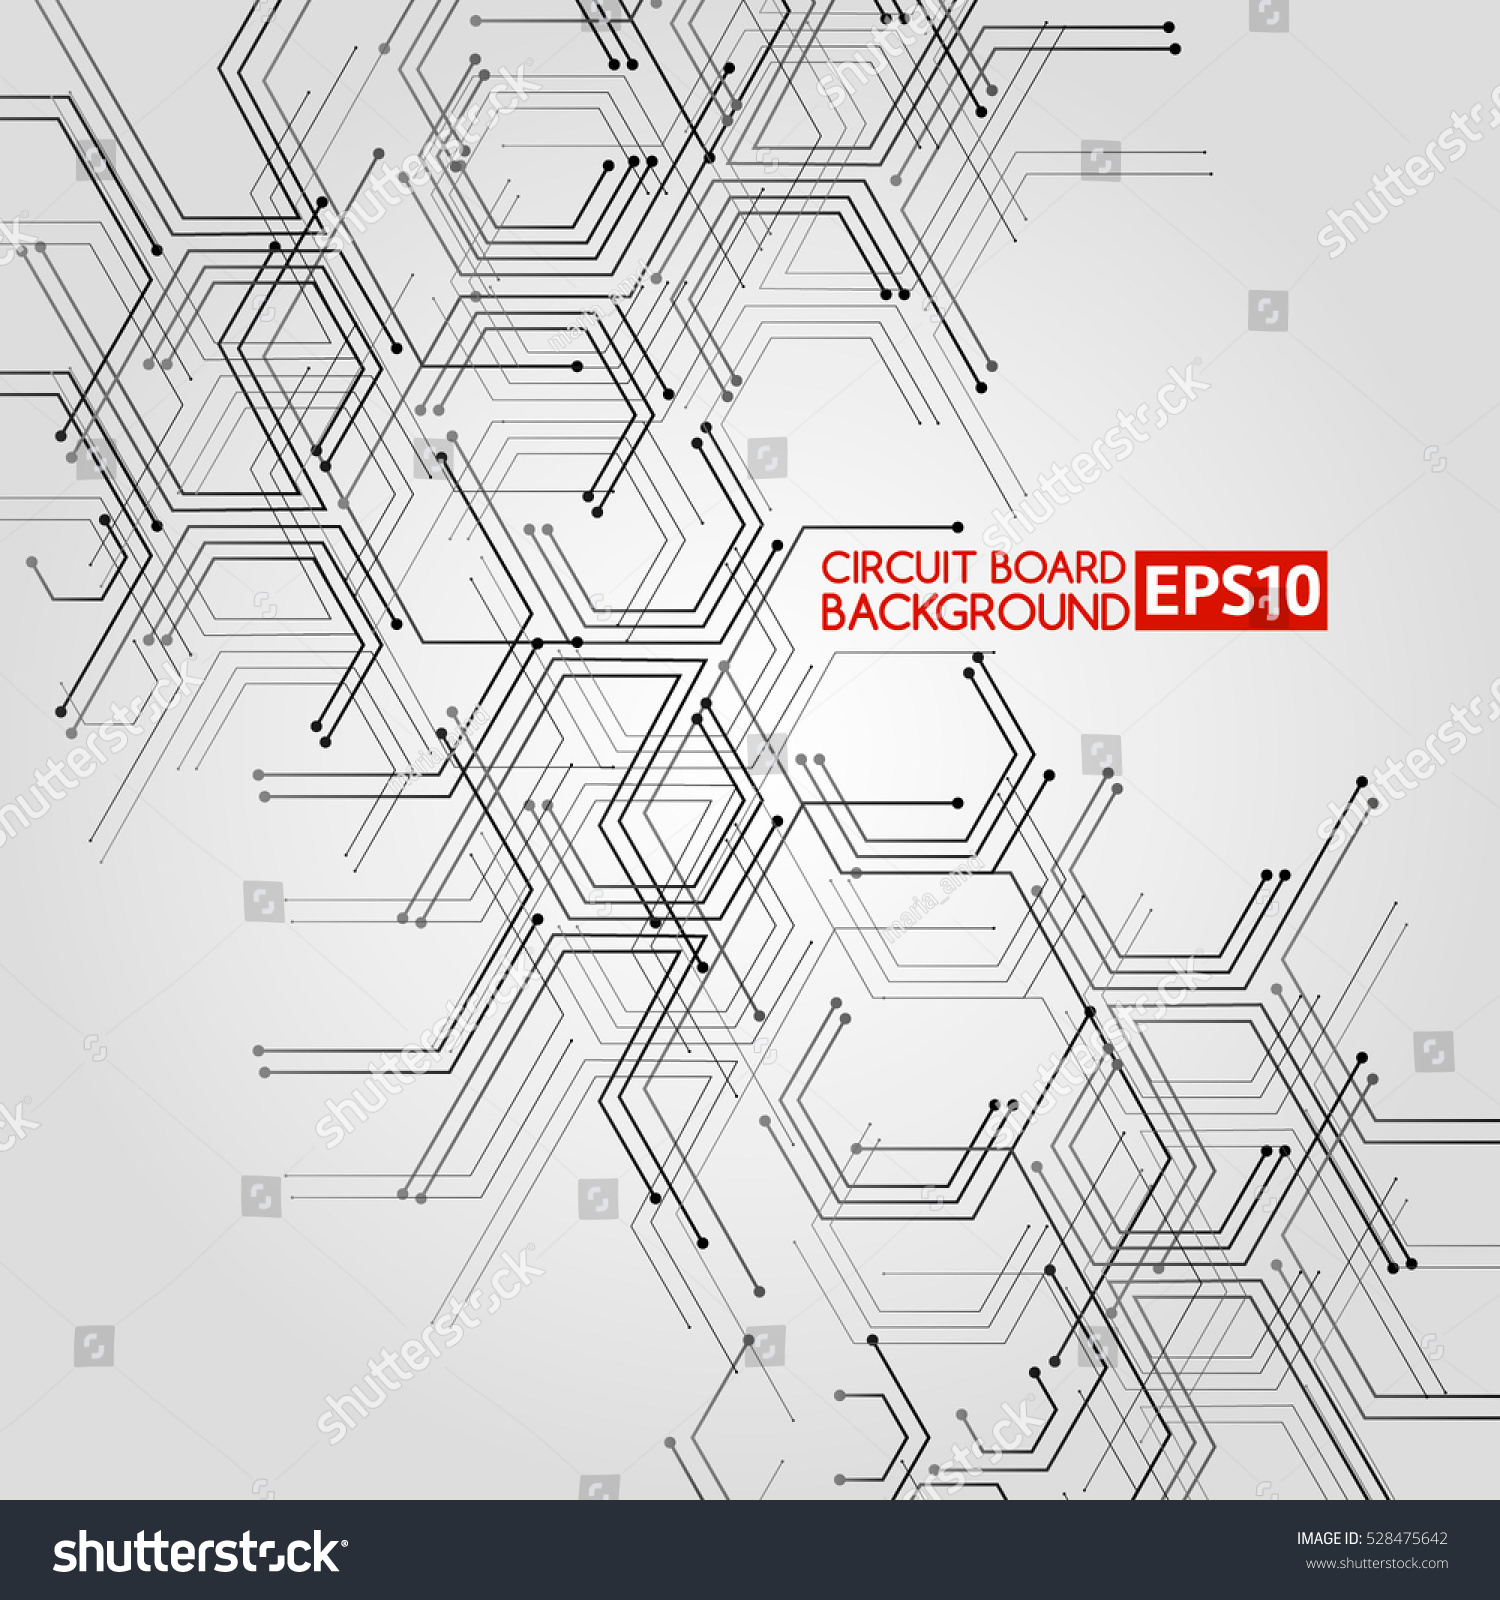 Integrated Circuit Board Stock Vector Illustration 78083728